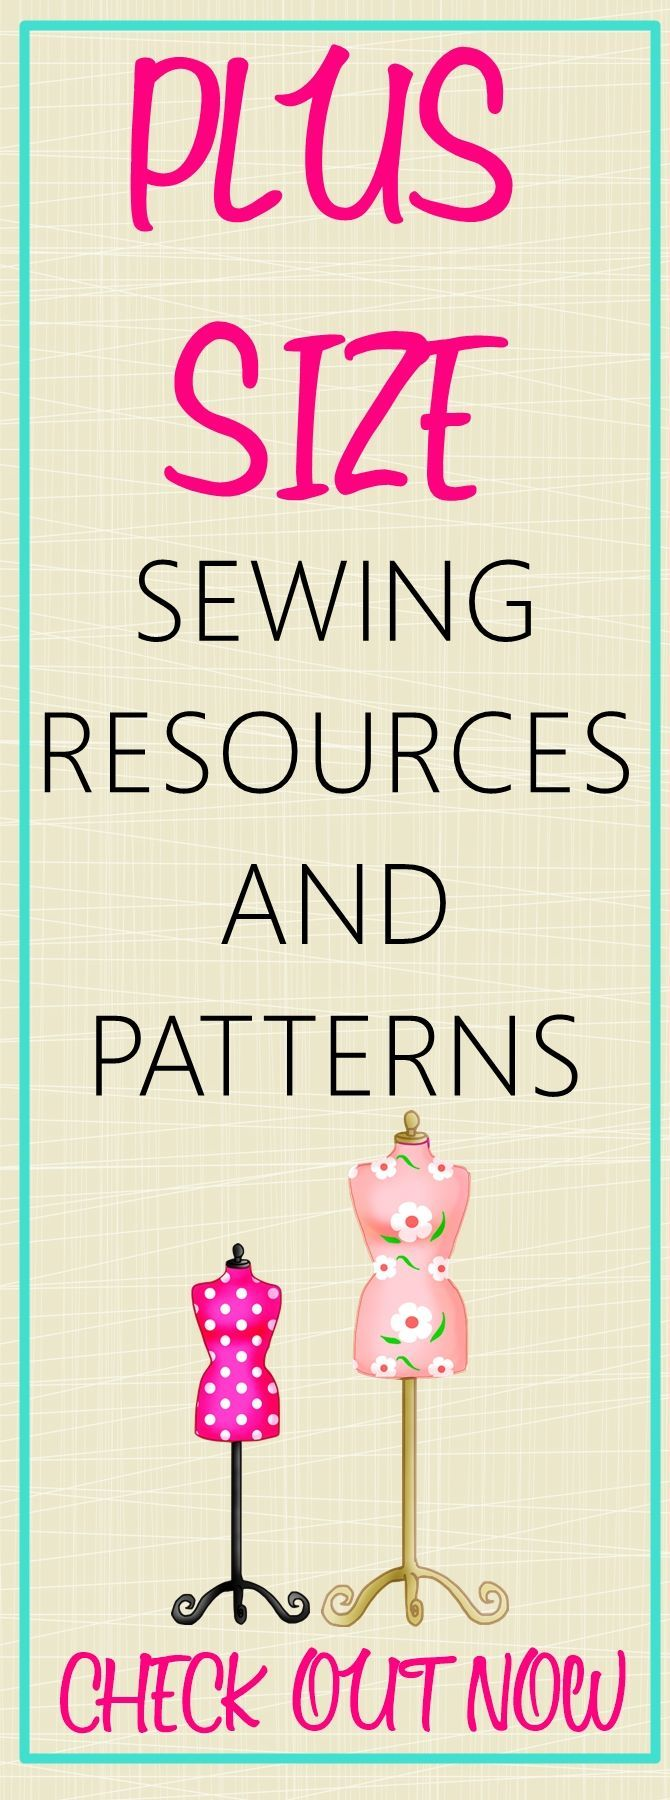 Plus size sewing resources and patterns on http://sewsomestuff.com. OMG perfect round up of ALL the things you EVER need for plus size sewing. Online classes, books AND patterns. CHECK OUT NOW